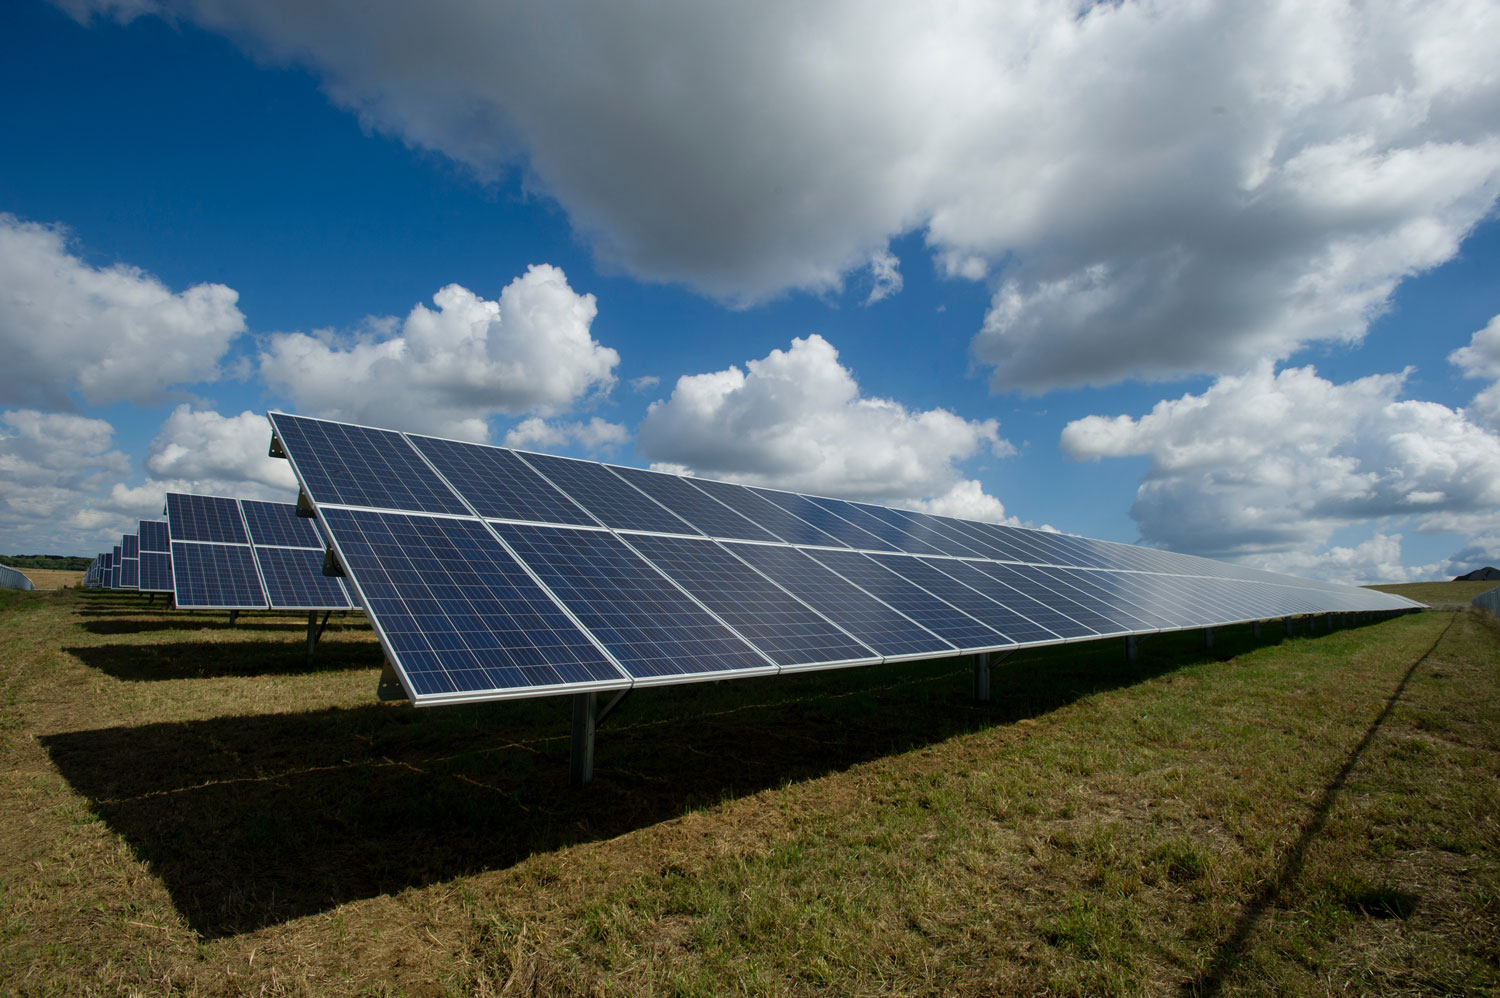 LAND-JOURNAL-Blog-Awareness-What Makes A Property Ideal for a Florida Solar Farm [VIDEO]-2019